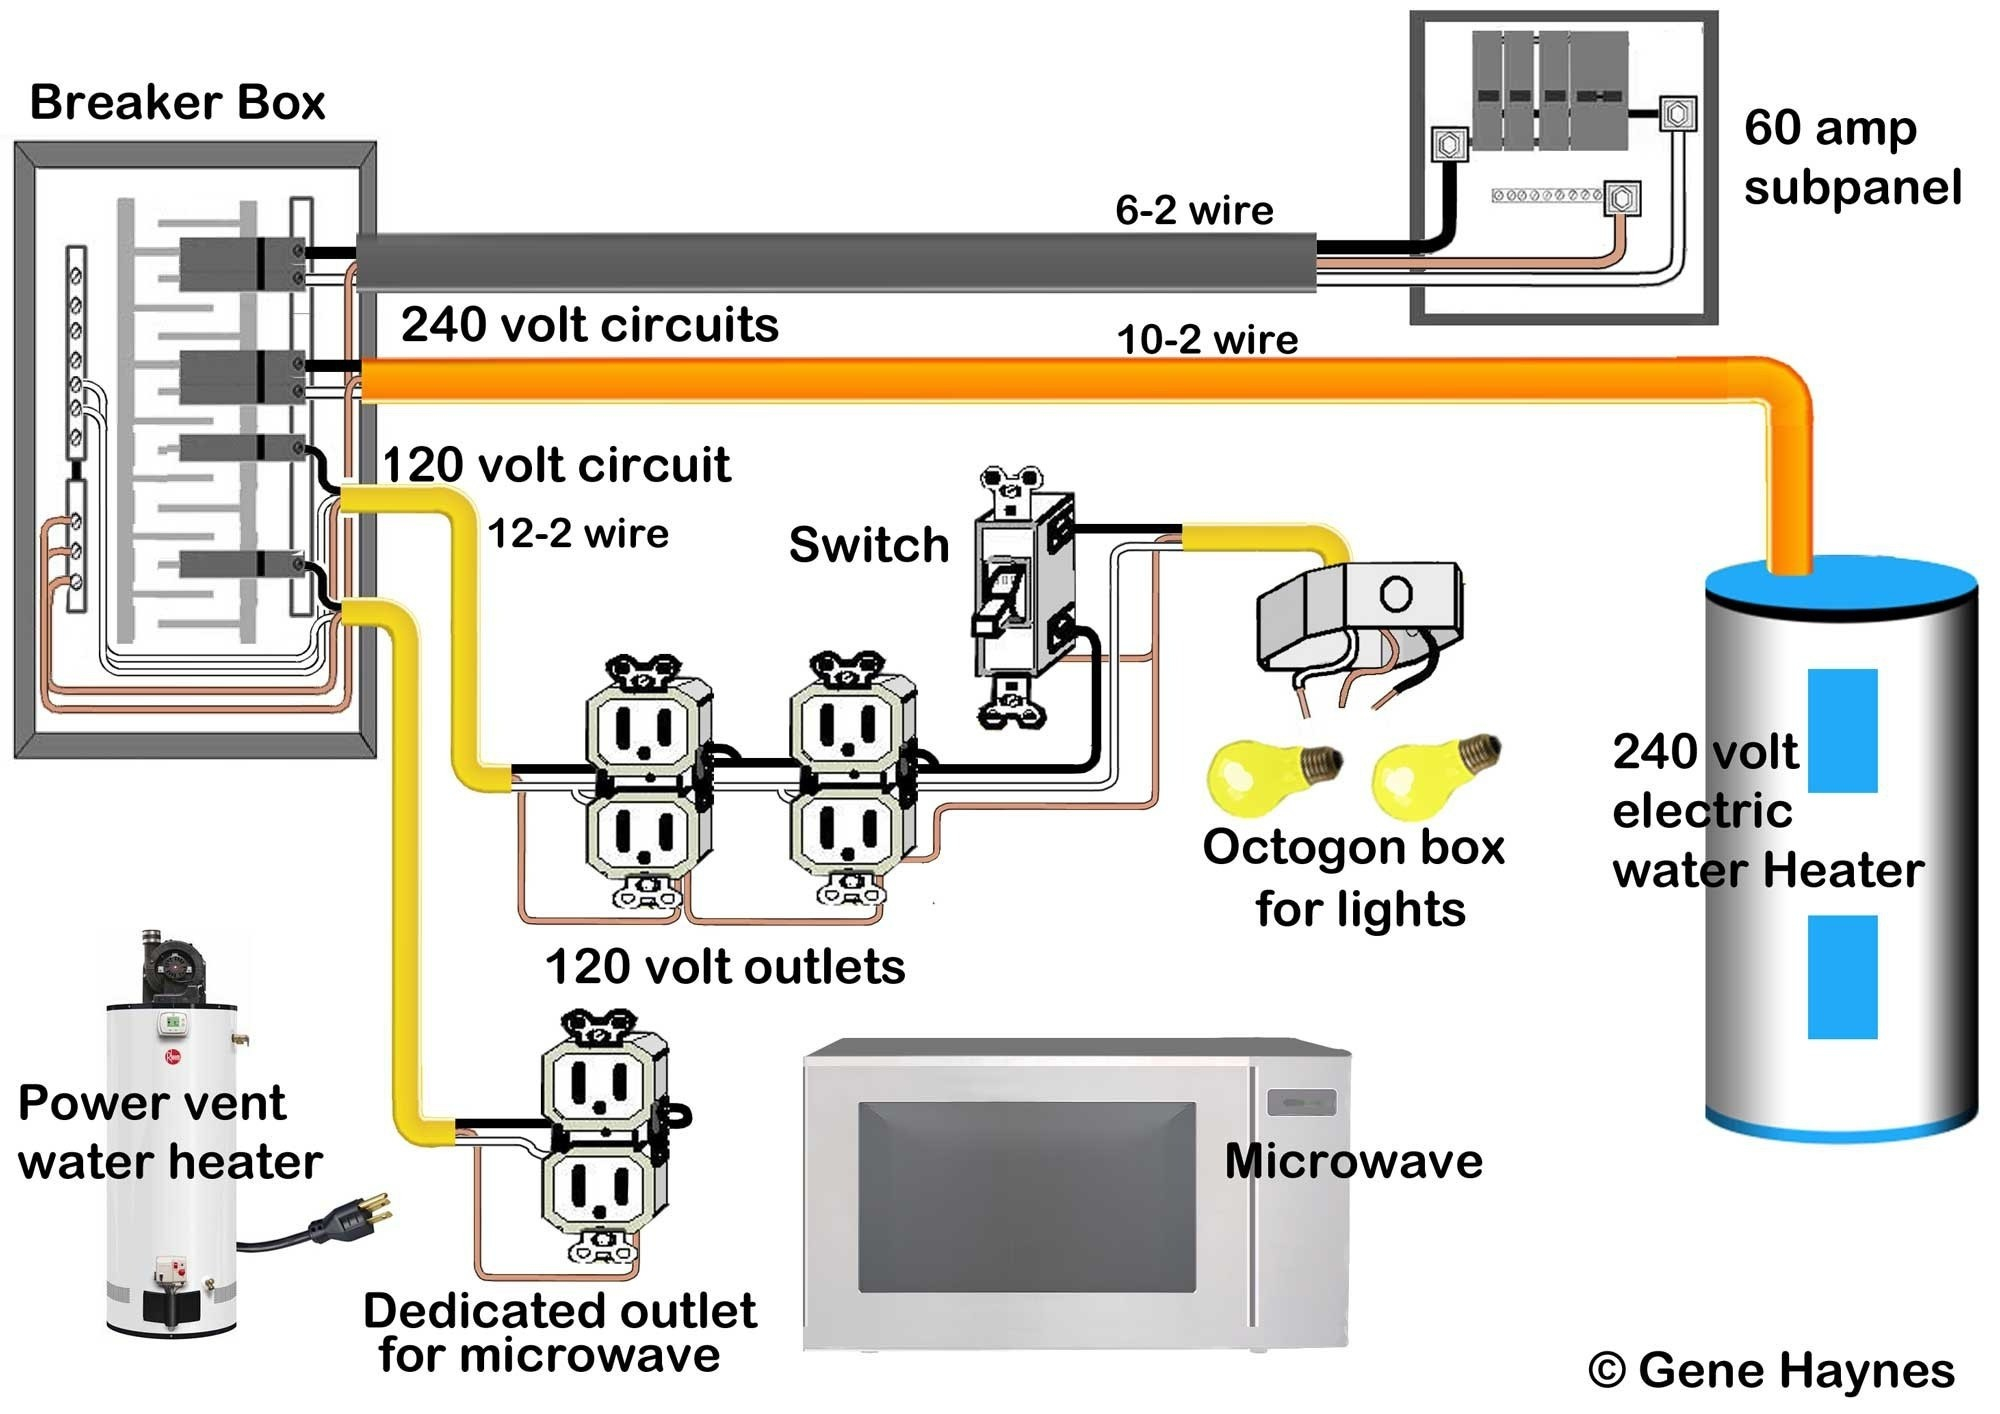 Sub Panel Wiring Diagram | Radiologyjob - 60 Amp Sub Panel Wiring Diagram